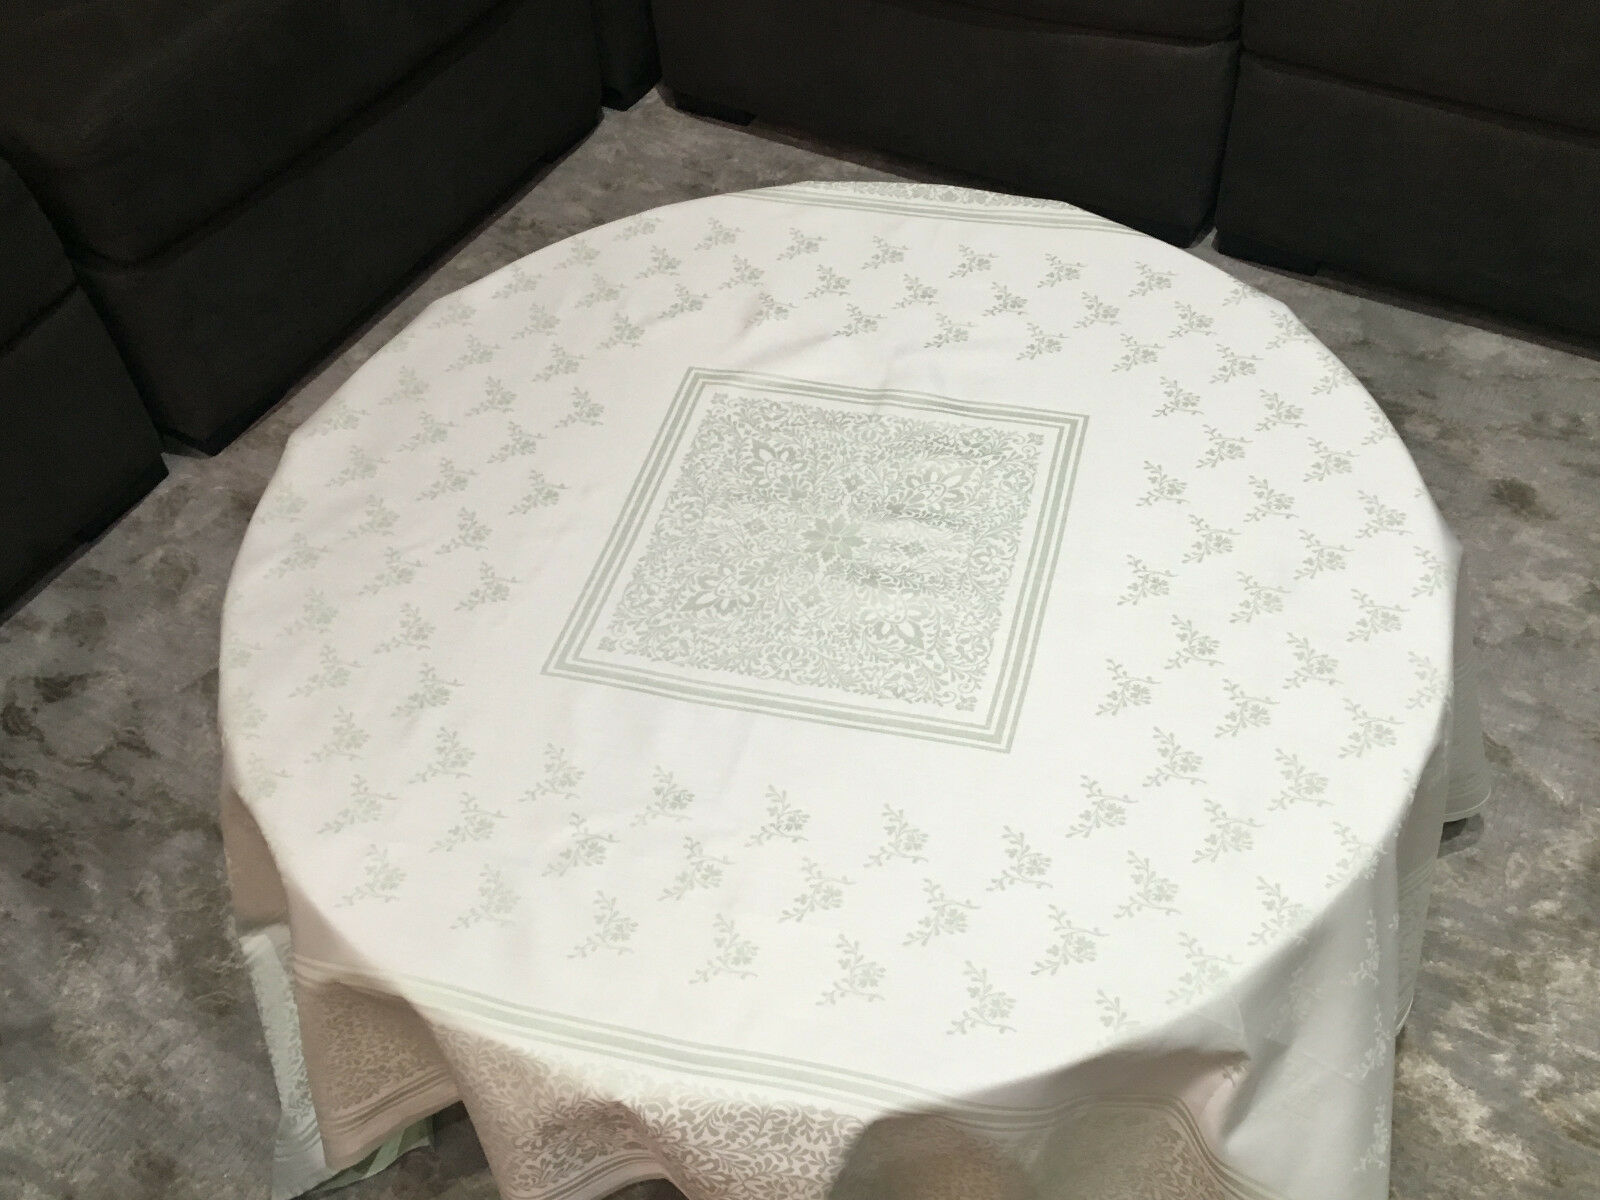 FRETTE 1908 vert 64  X 64  Floral Embroiderouge Tablecloth, SOFT & SMOOTHE